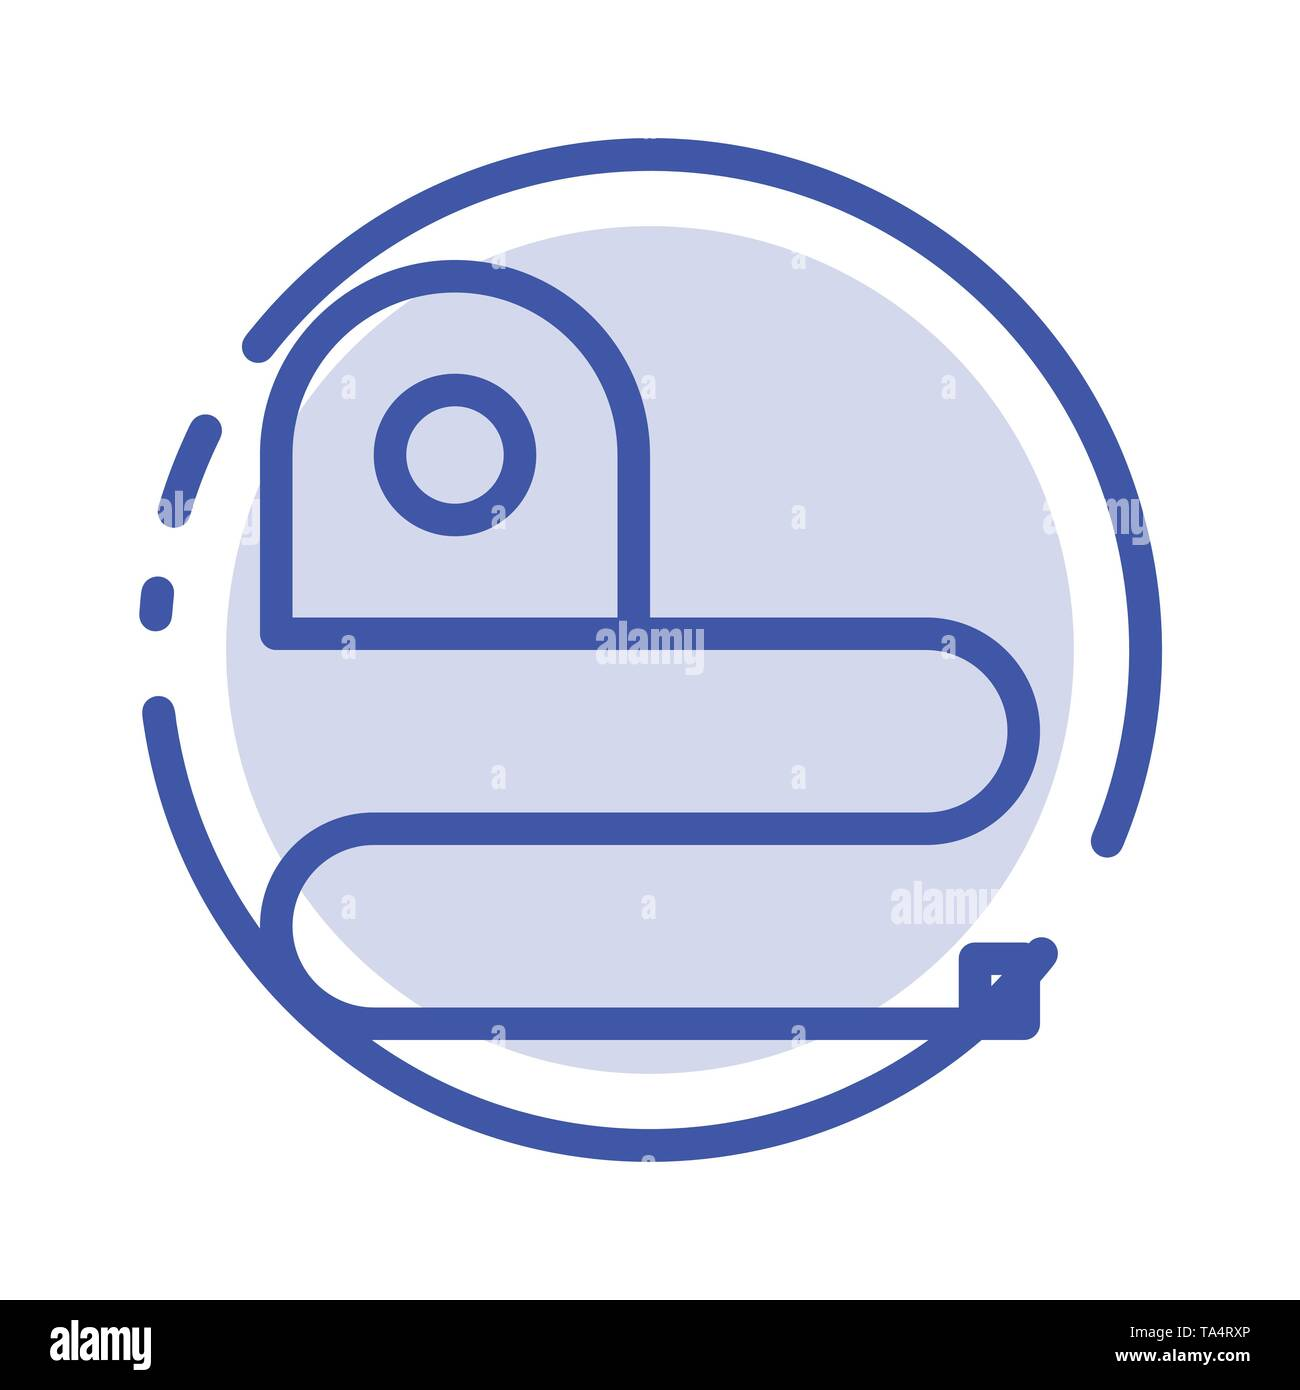 Construction, Measuring, Scale, Tape Blue Dotted Line Line Icon - Stock Image